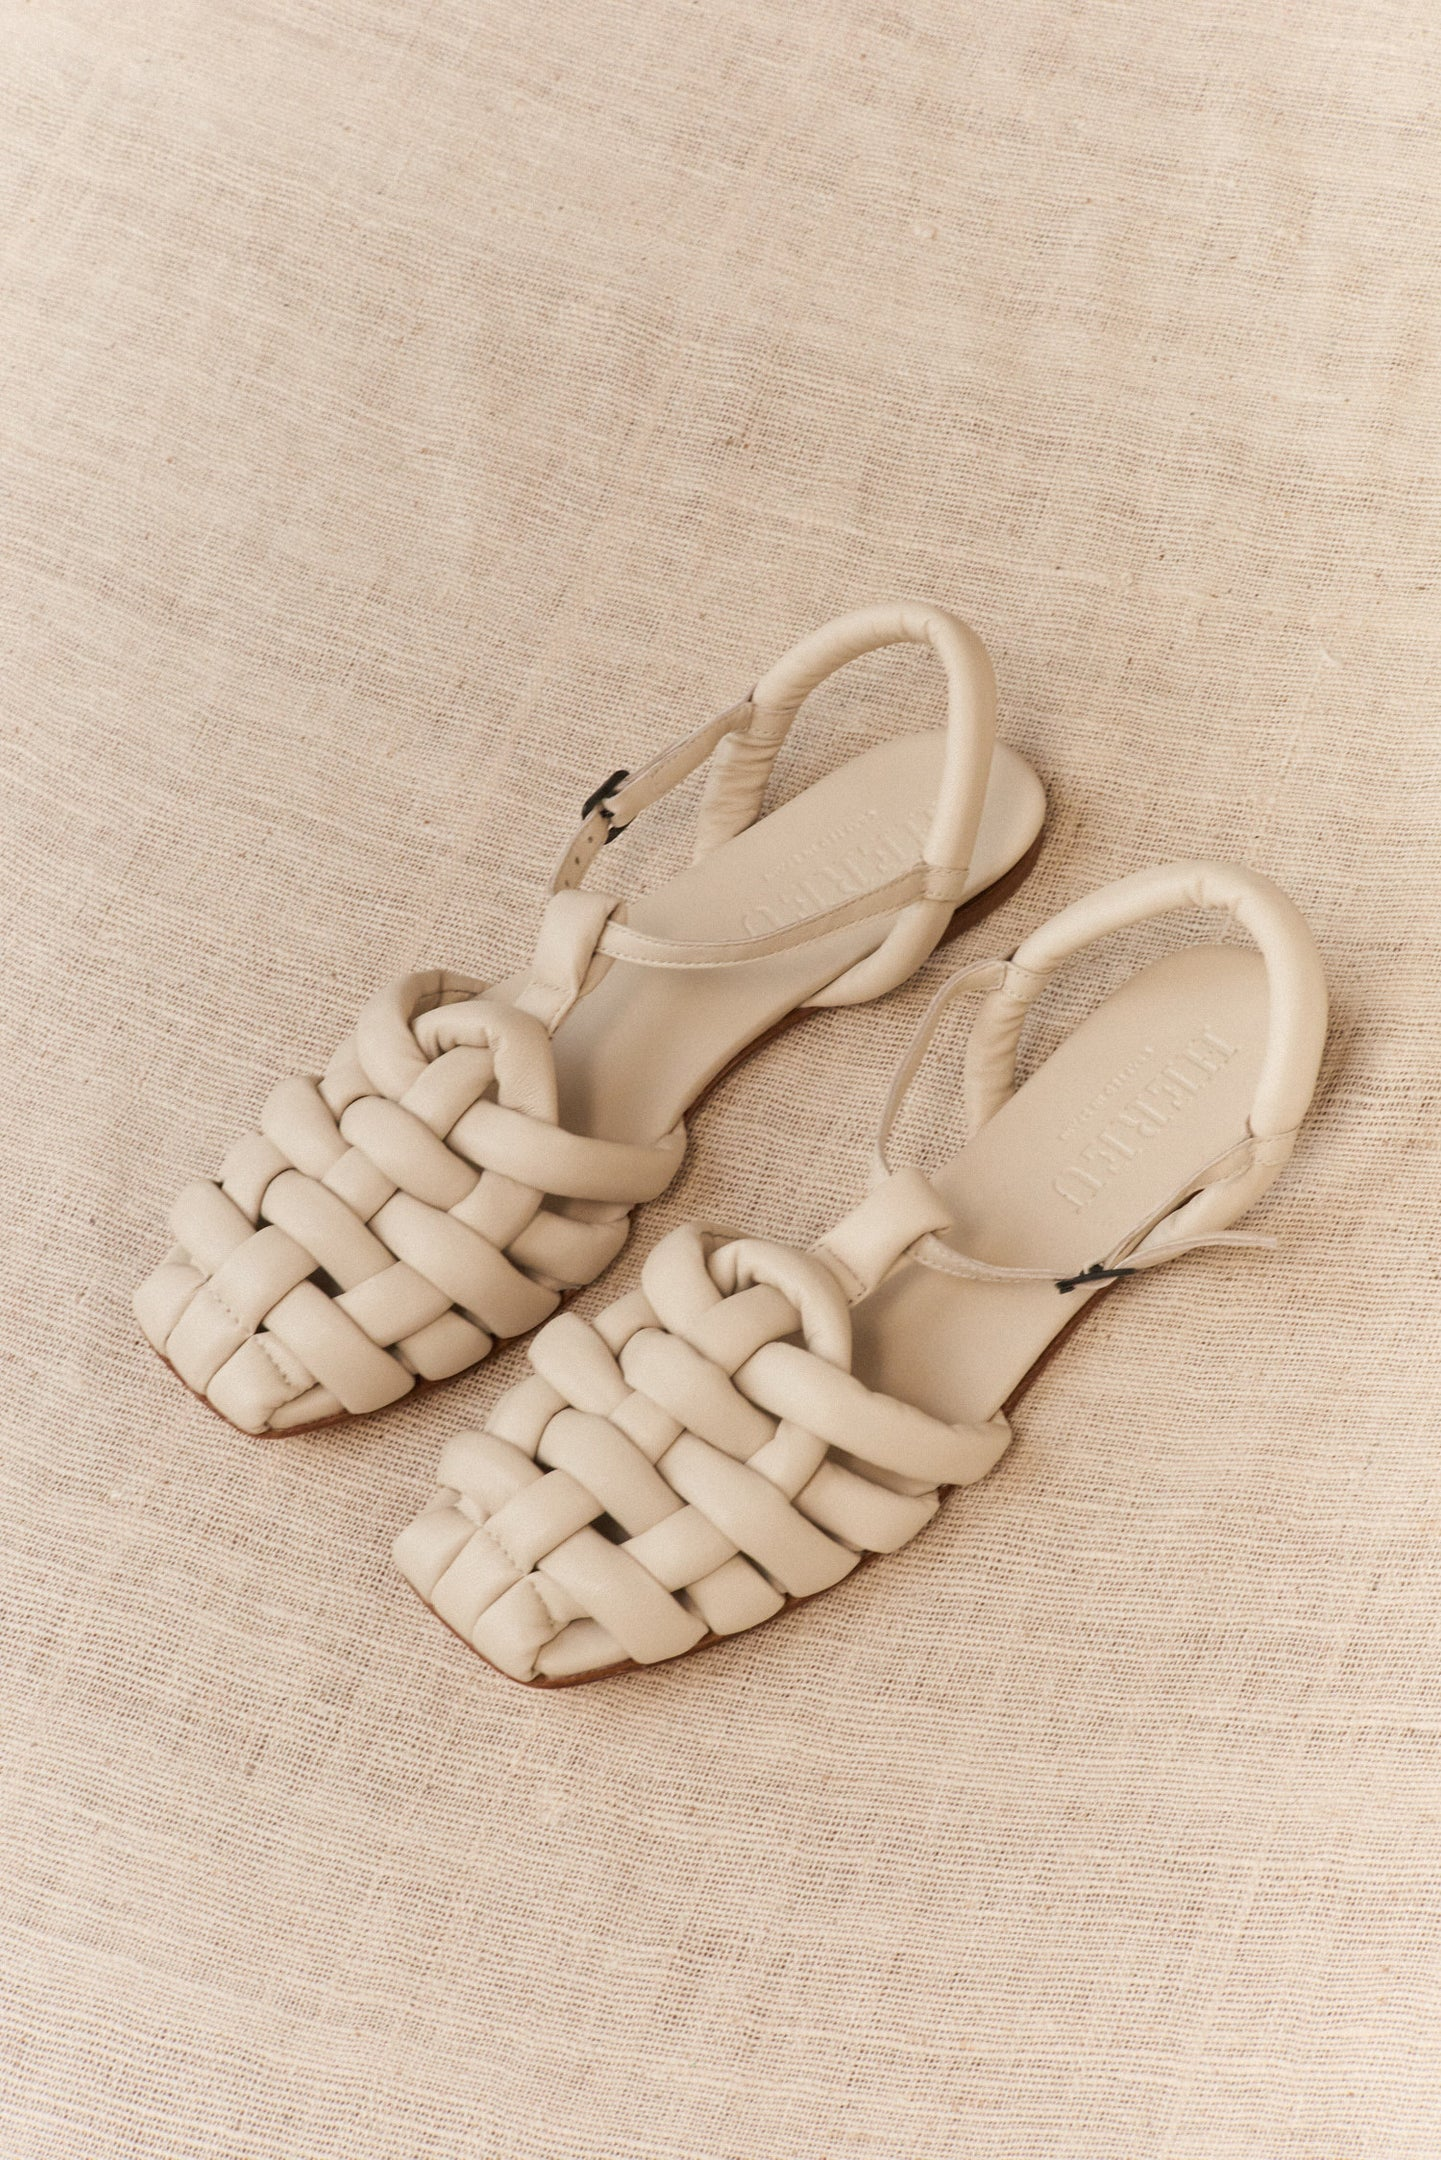 Hereu, Cabersa,Padded Fisherman Sandal Cream